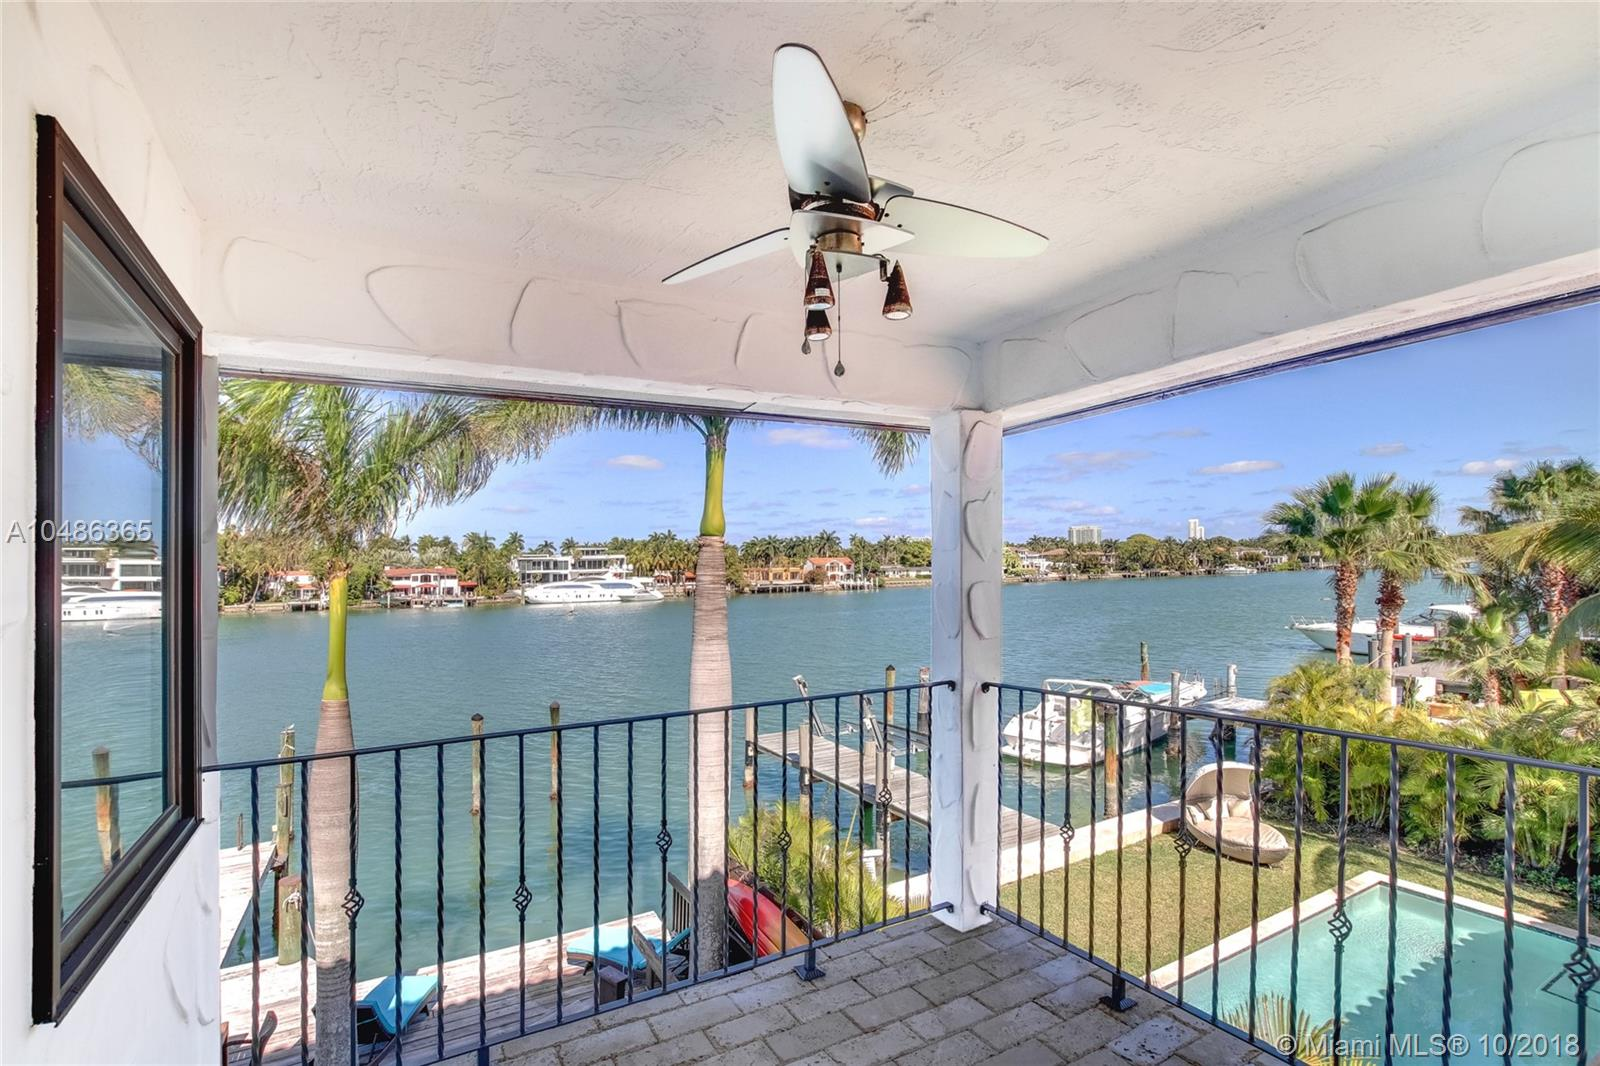 257 Coconut ln- miami-beach-fl-33139-a10486365-Pic23